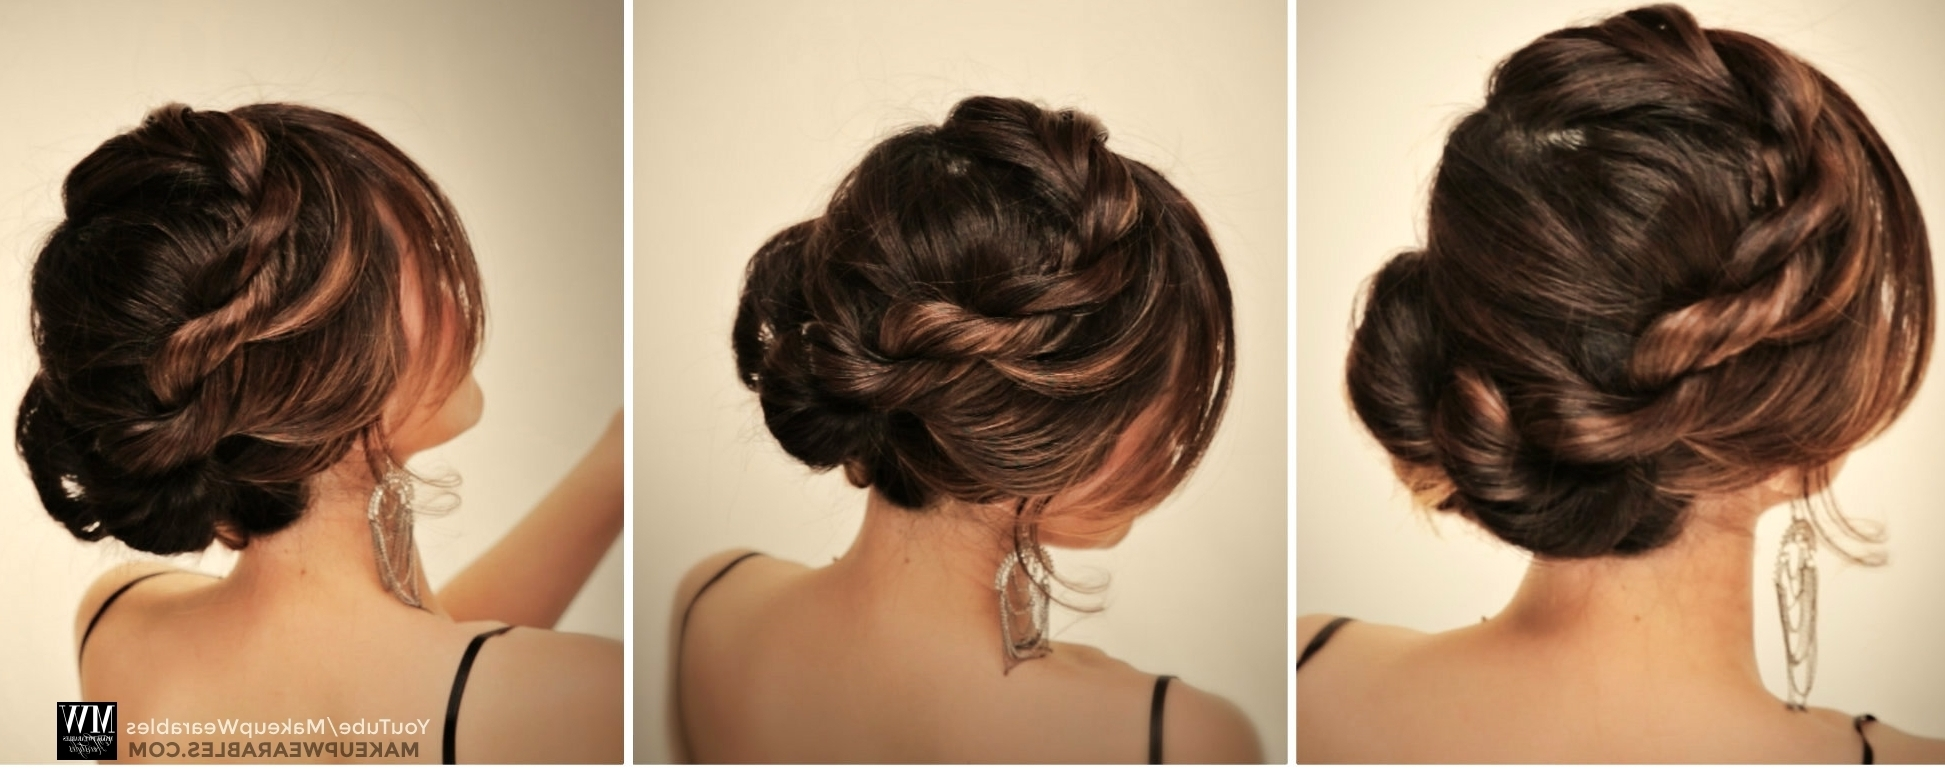 How To: 5 Amazingly Cute + Easy Hairstyles With A Simple Twist With Cute Bun Updo Hairstyles (View 3 of 15)